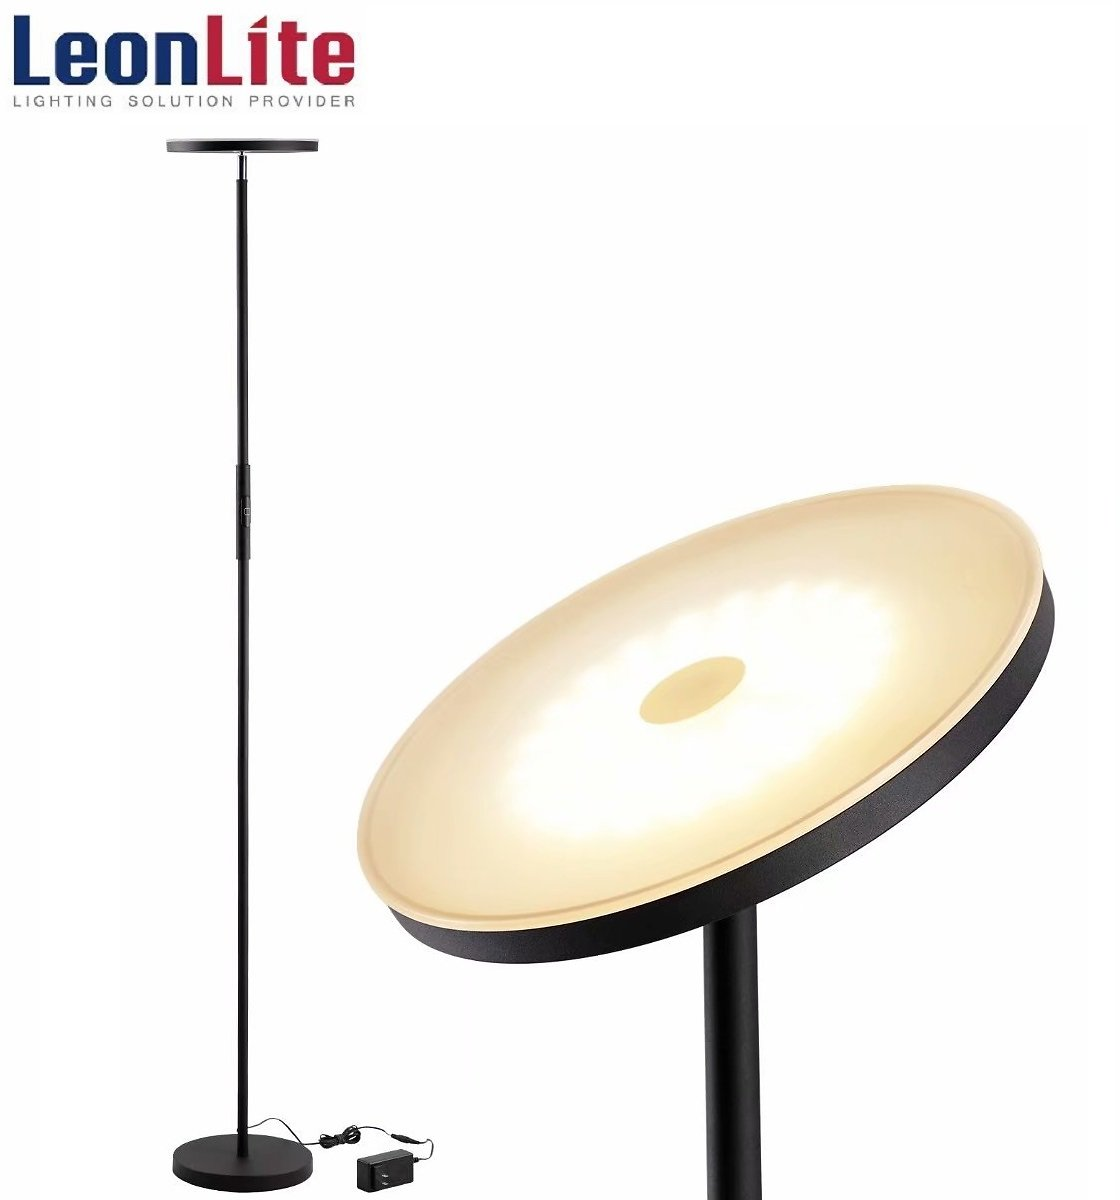 LEONLITE LED Floor Lamp, Dimmable LED Torchiere Lamp, 69-Inch Standing Lamp for Living Room, Dorm, Bedroom and Office